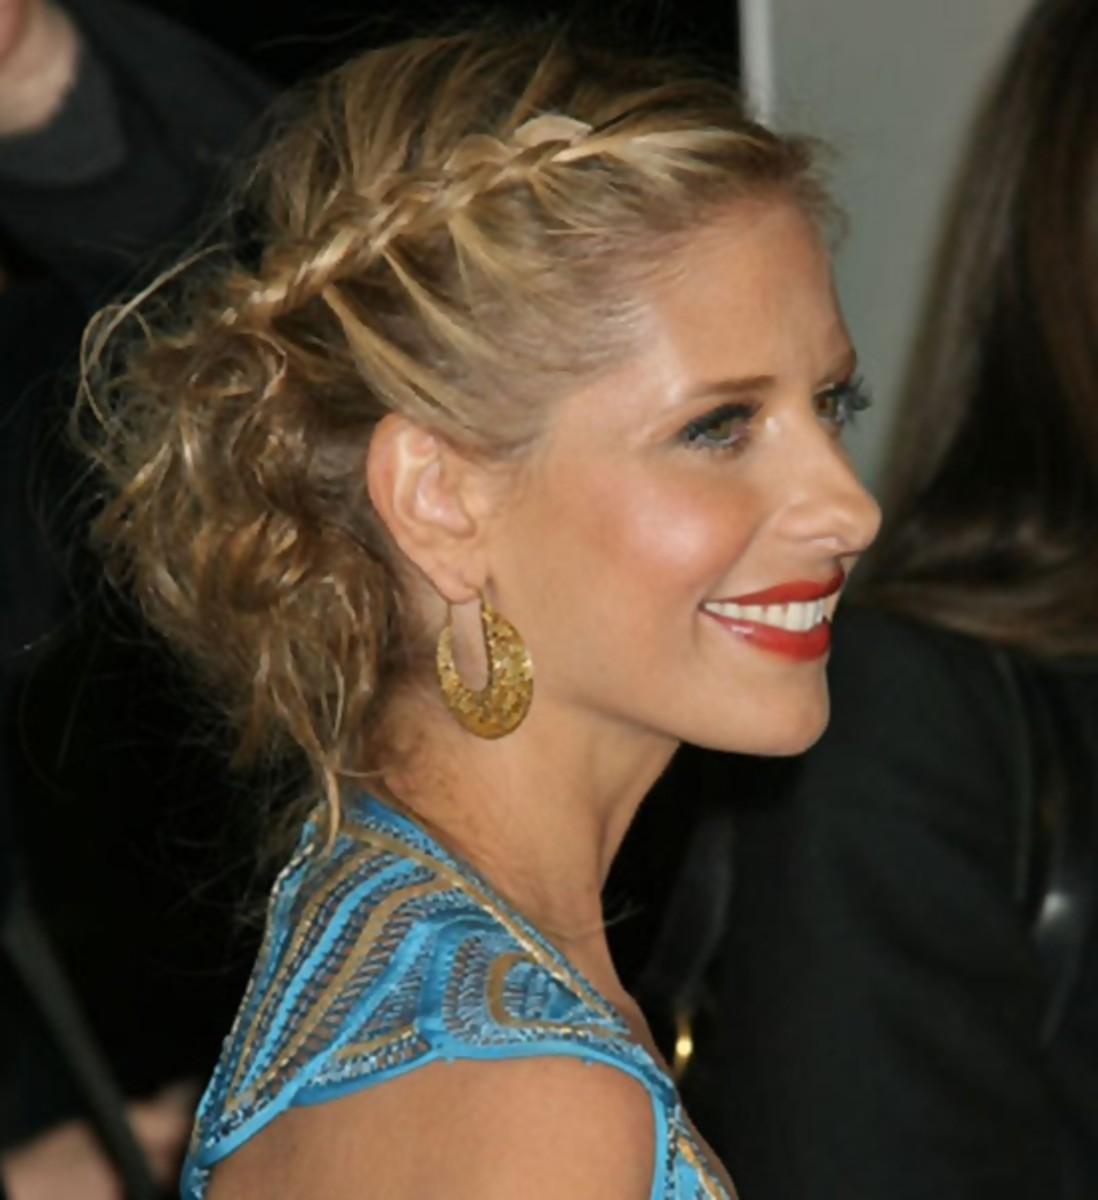 Sarah Michelle Gellar - 2013 Braided Hairstyles - Fun Braids and Braided Updo Hair Styles